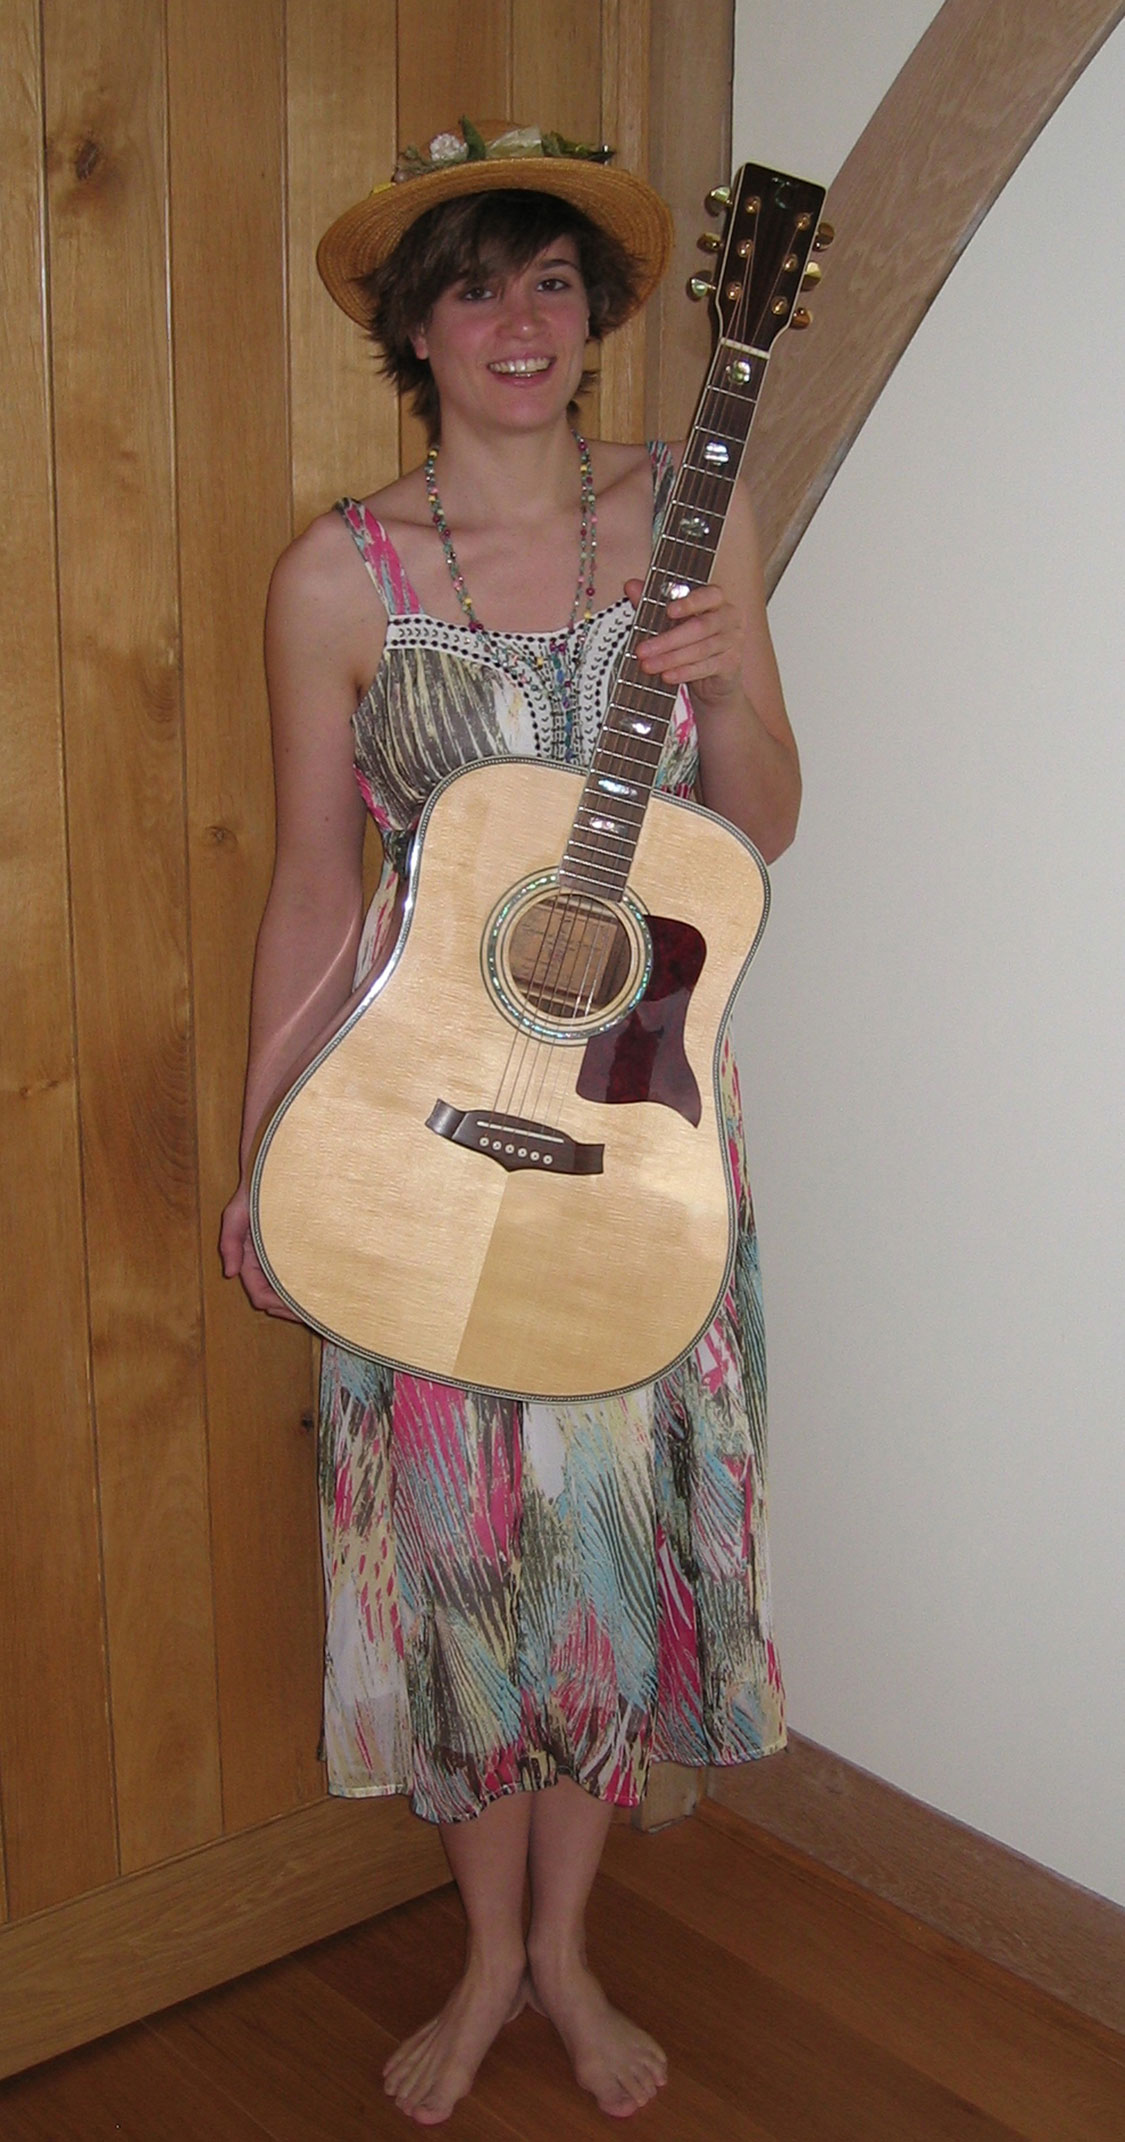 Nicola Finchwood - Acoustic Guitarist